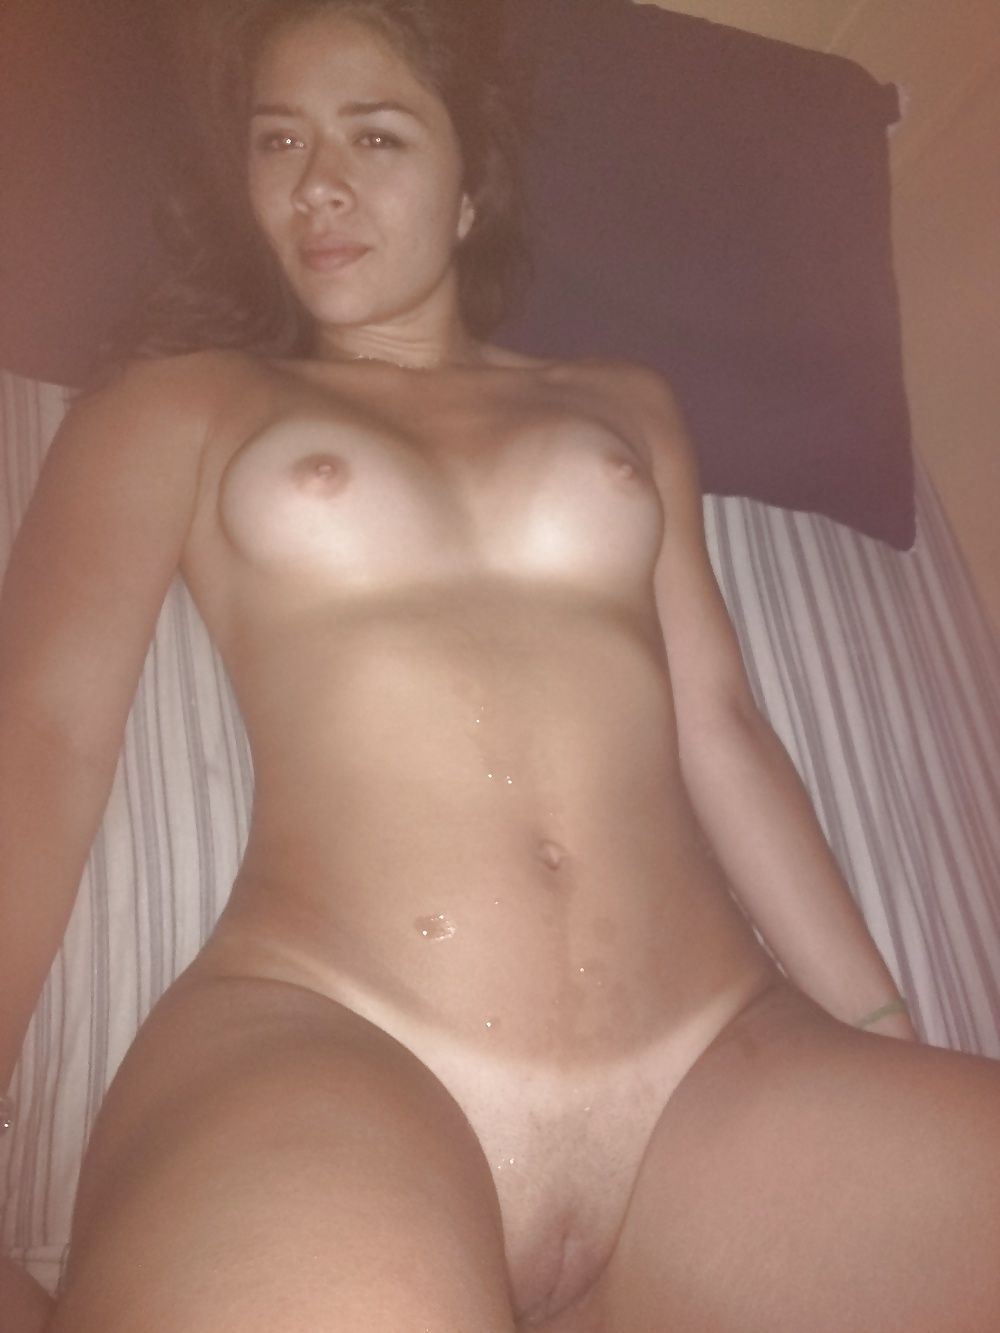 Malaysian College Babe Leaked Asiangirls Asian Followme Sexy F4f Adult Hot Porn